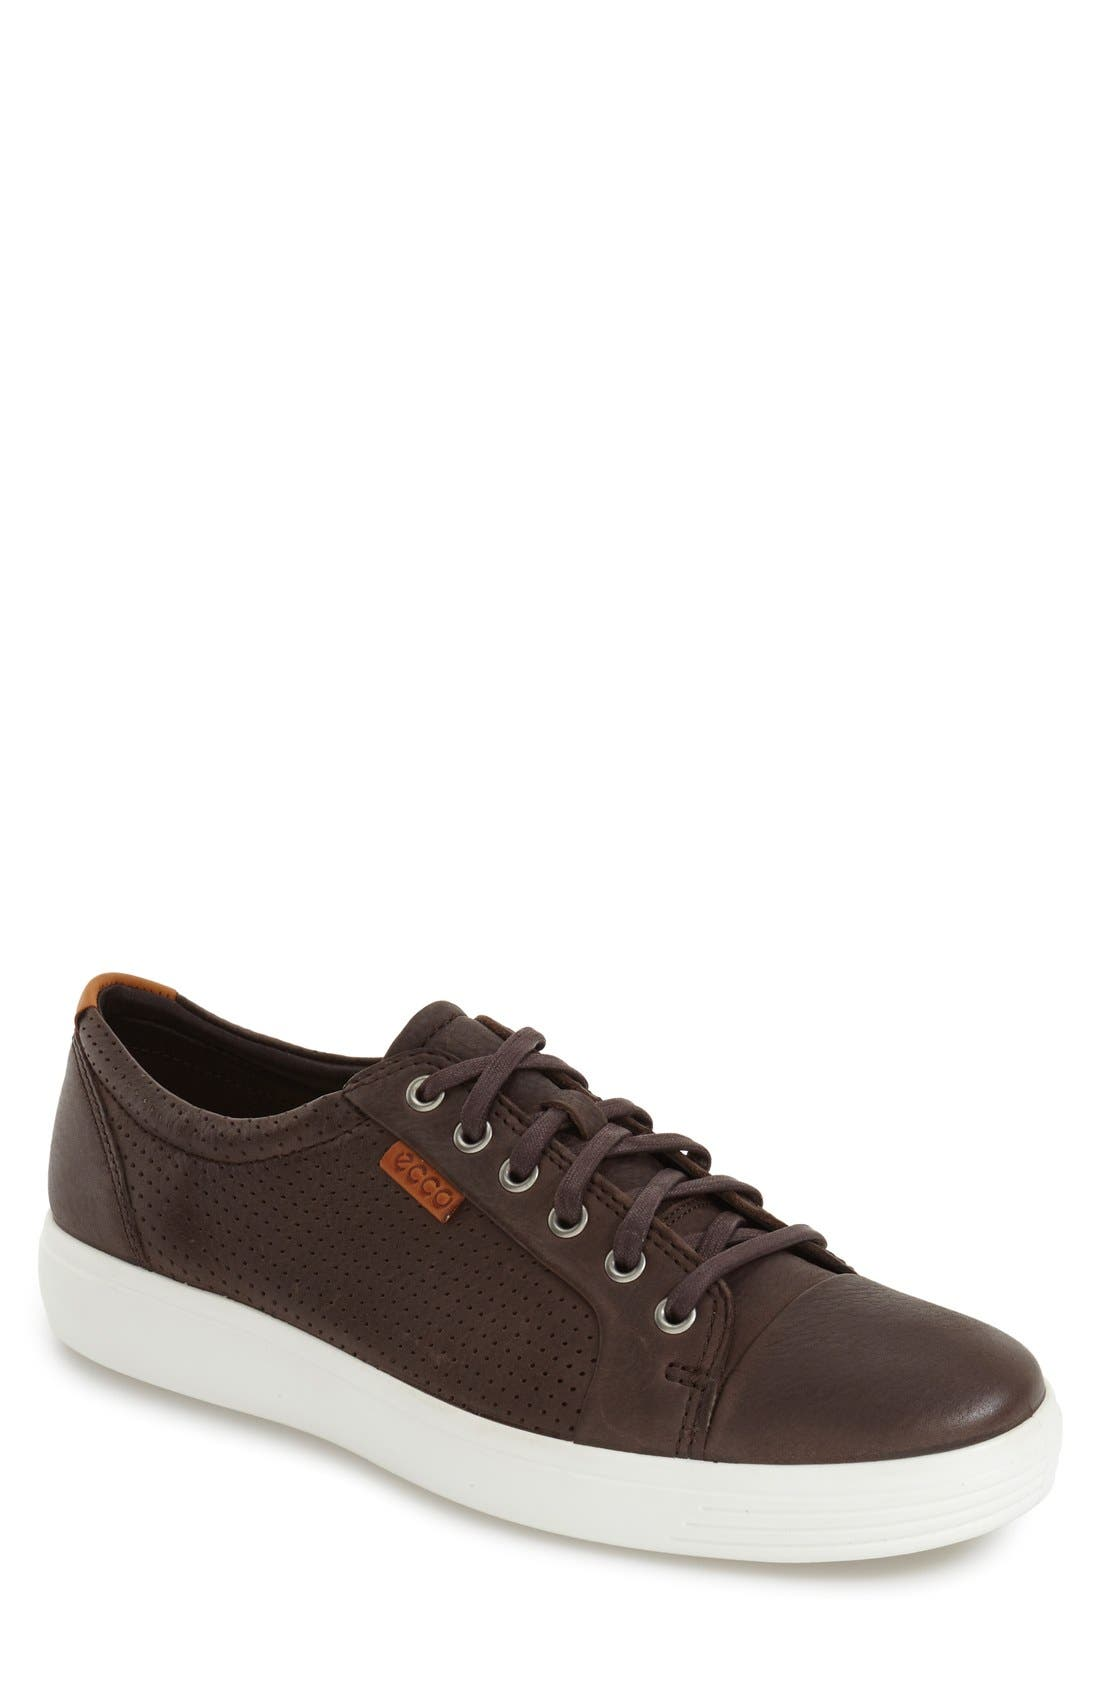 'Soft 7' Sneaker,                         Main,                         color, COFFEE LEATHER